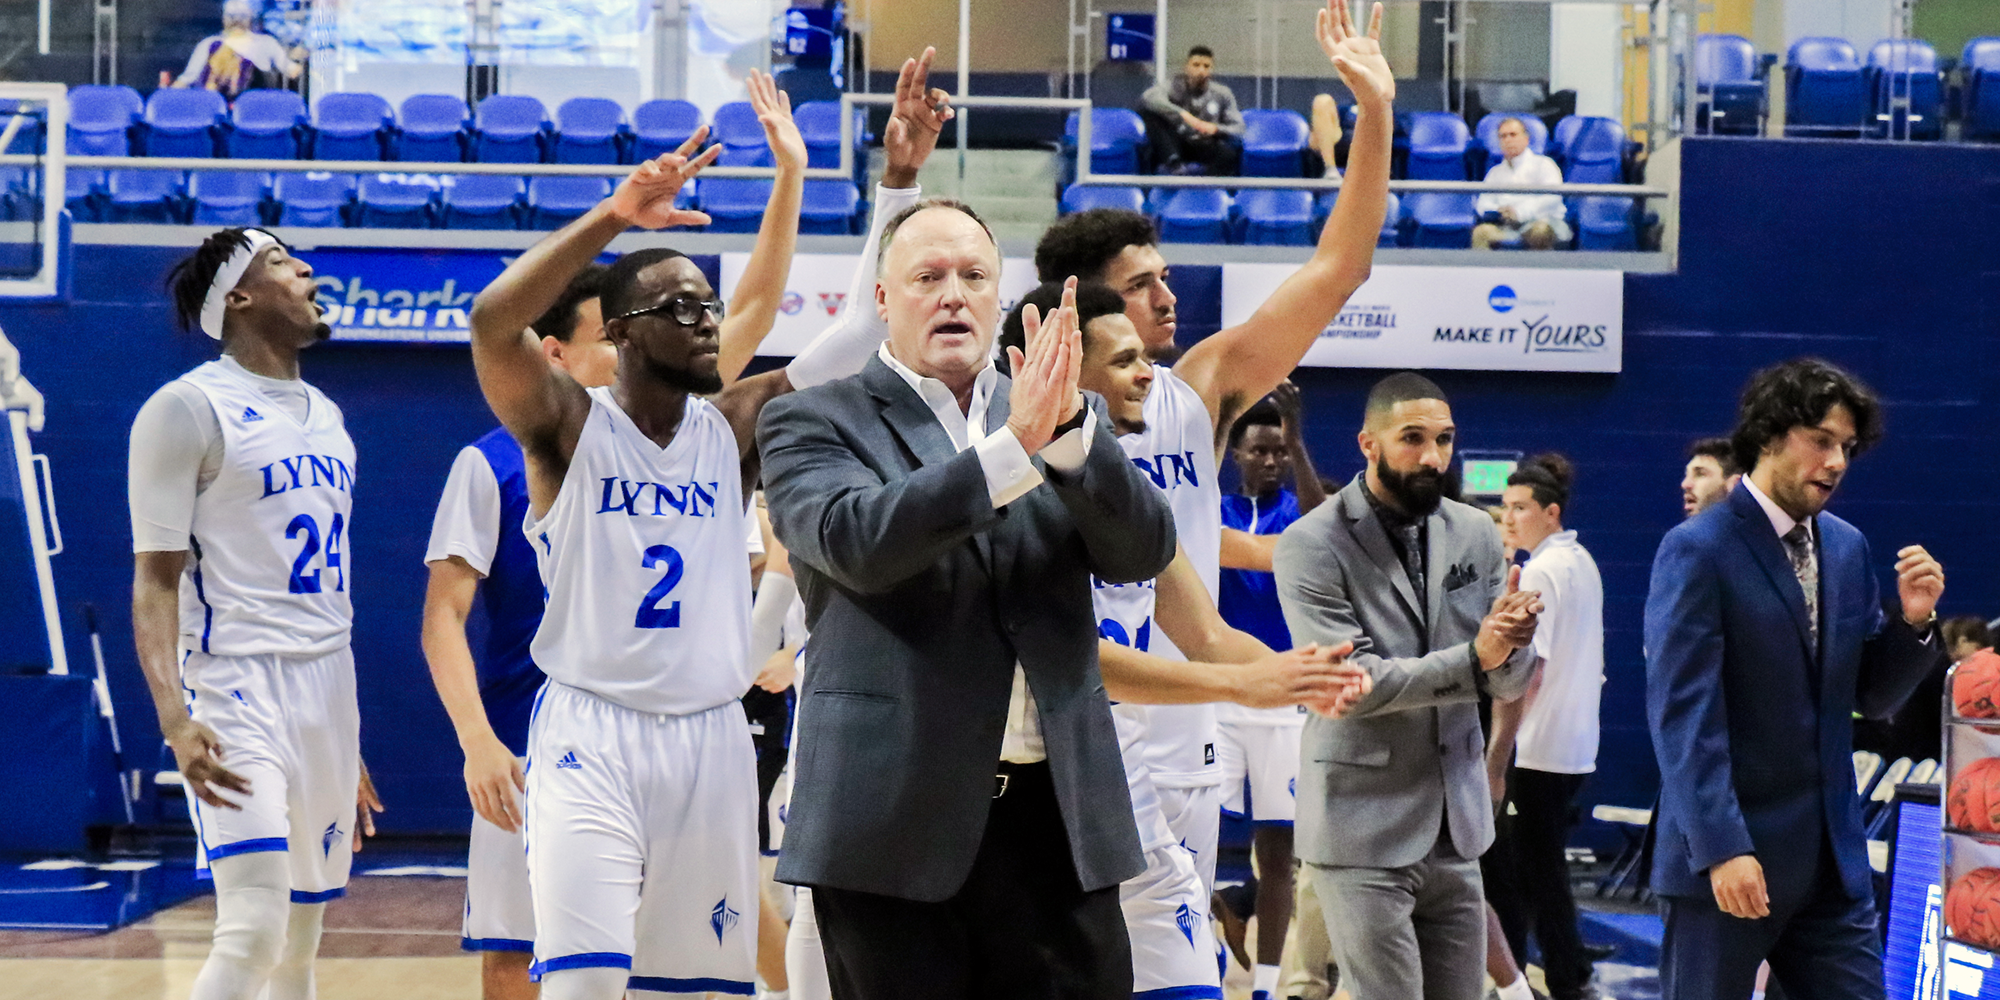 No. 18 Men's Basketball Charges Past UAH in NCAA South Region Opener